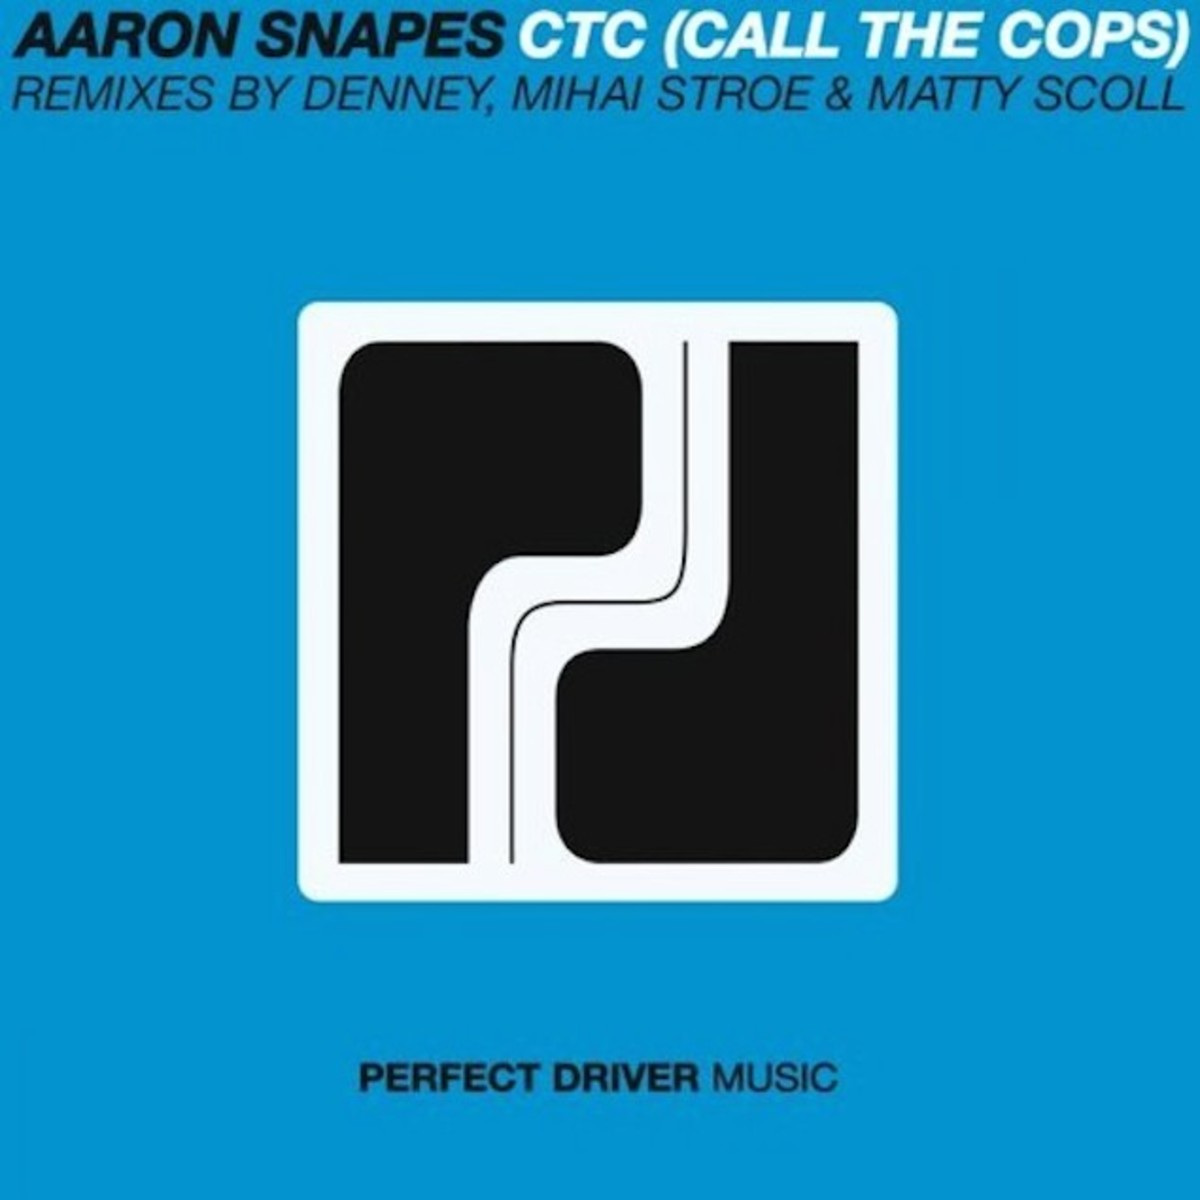 EDM Download: Aaron Snapes Gives Away 5 Track Booty Bass EP